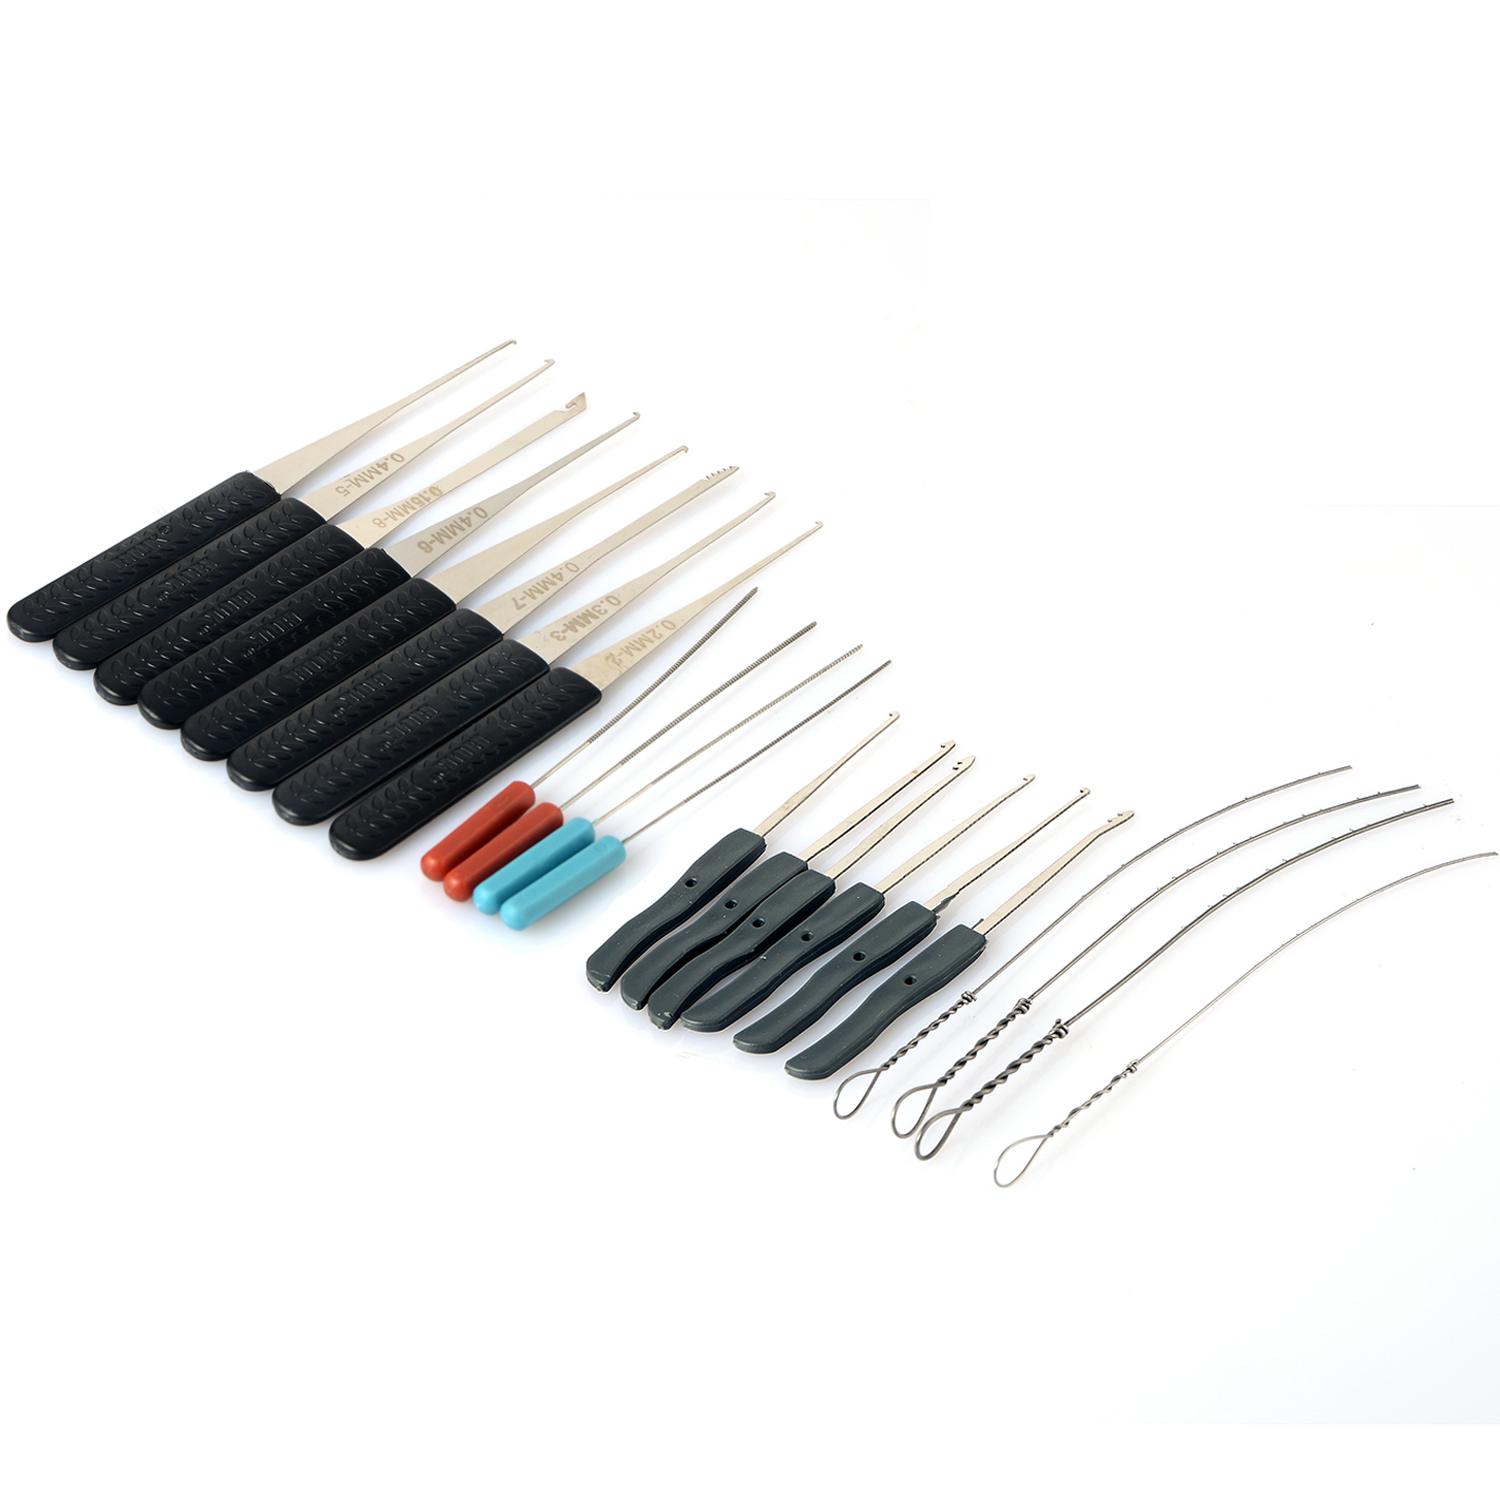 Lock Pick Set Locksmith Tool Lock Pin Broken Key Extractor Key Remove Hooks Lock Professional Hand Tools 12pcs+10pcs image